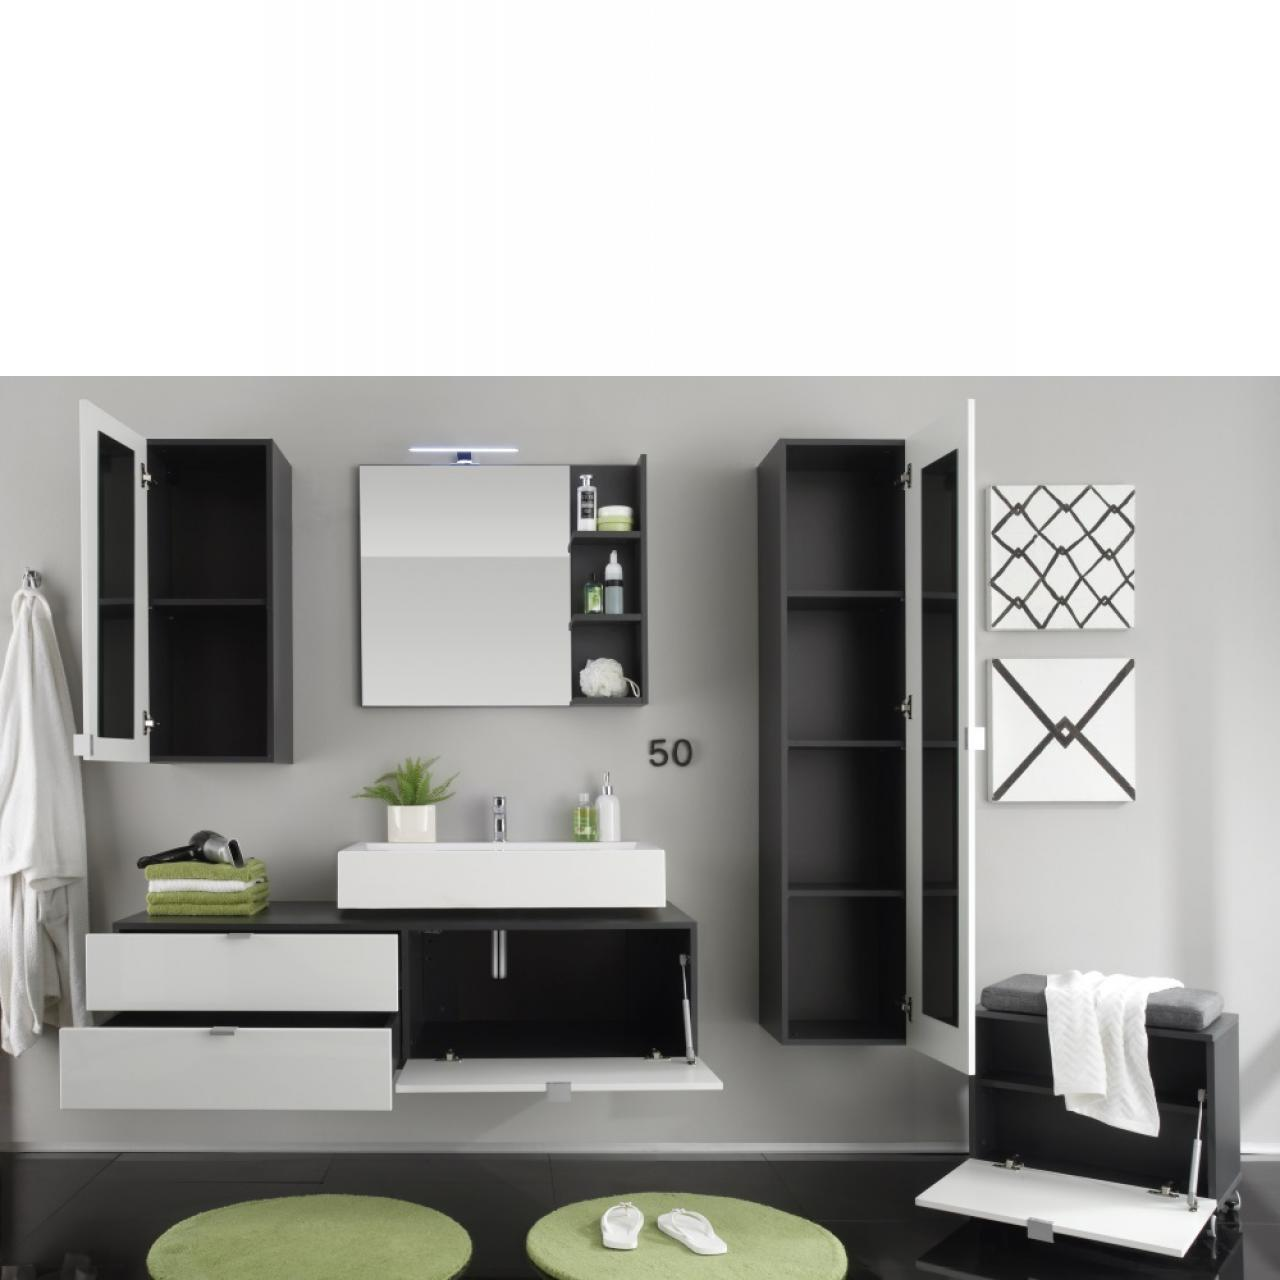 wandspiegel bad beach mit ablage badm bel wohnen m bel j hnichen center gmbh. Black Bedroom Furniture Sets. Home Design Ideas